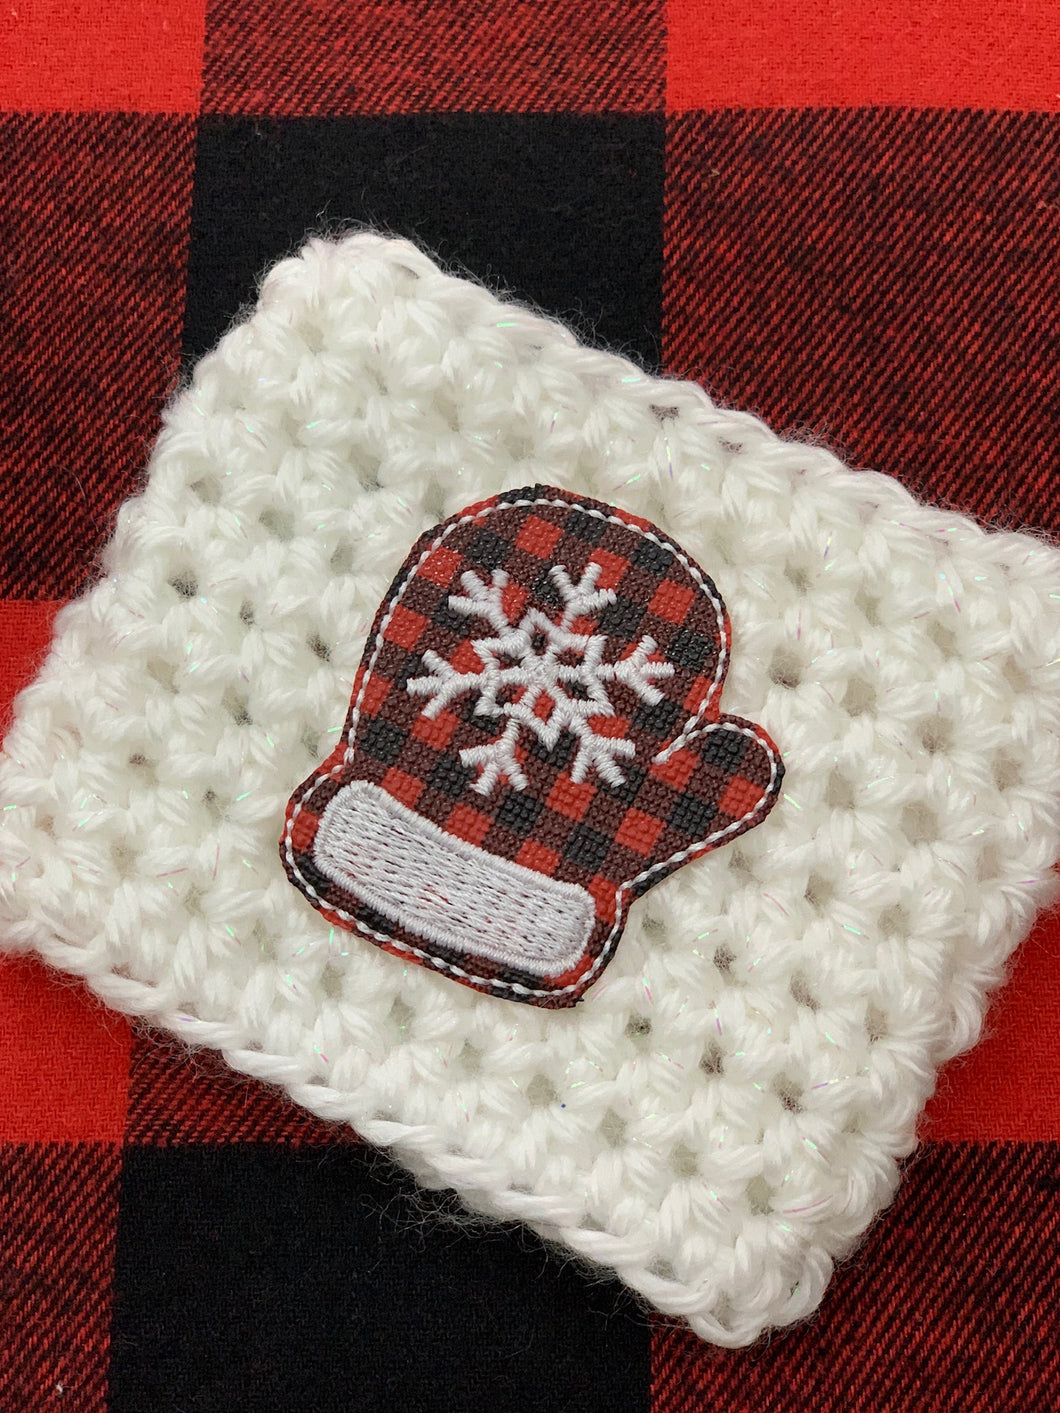 Red Buffalo Plaid Mitten Reusable Eco Friendly Hot and Cold Beverage Cup Cozy